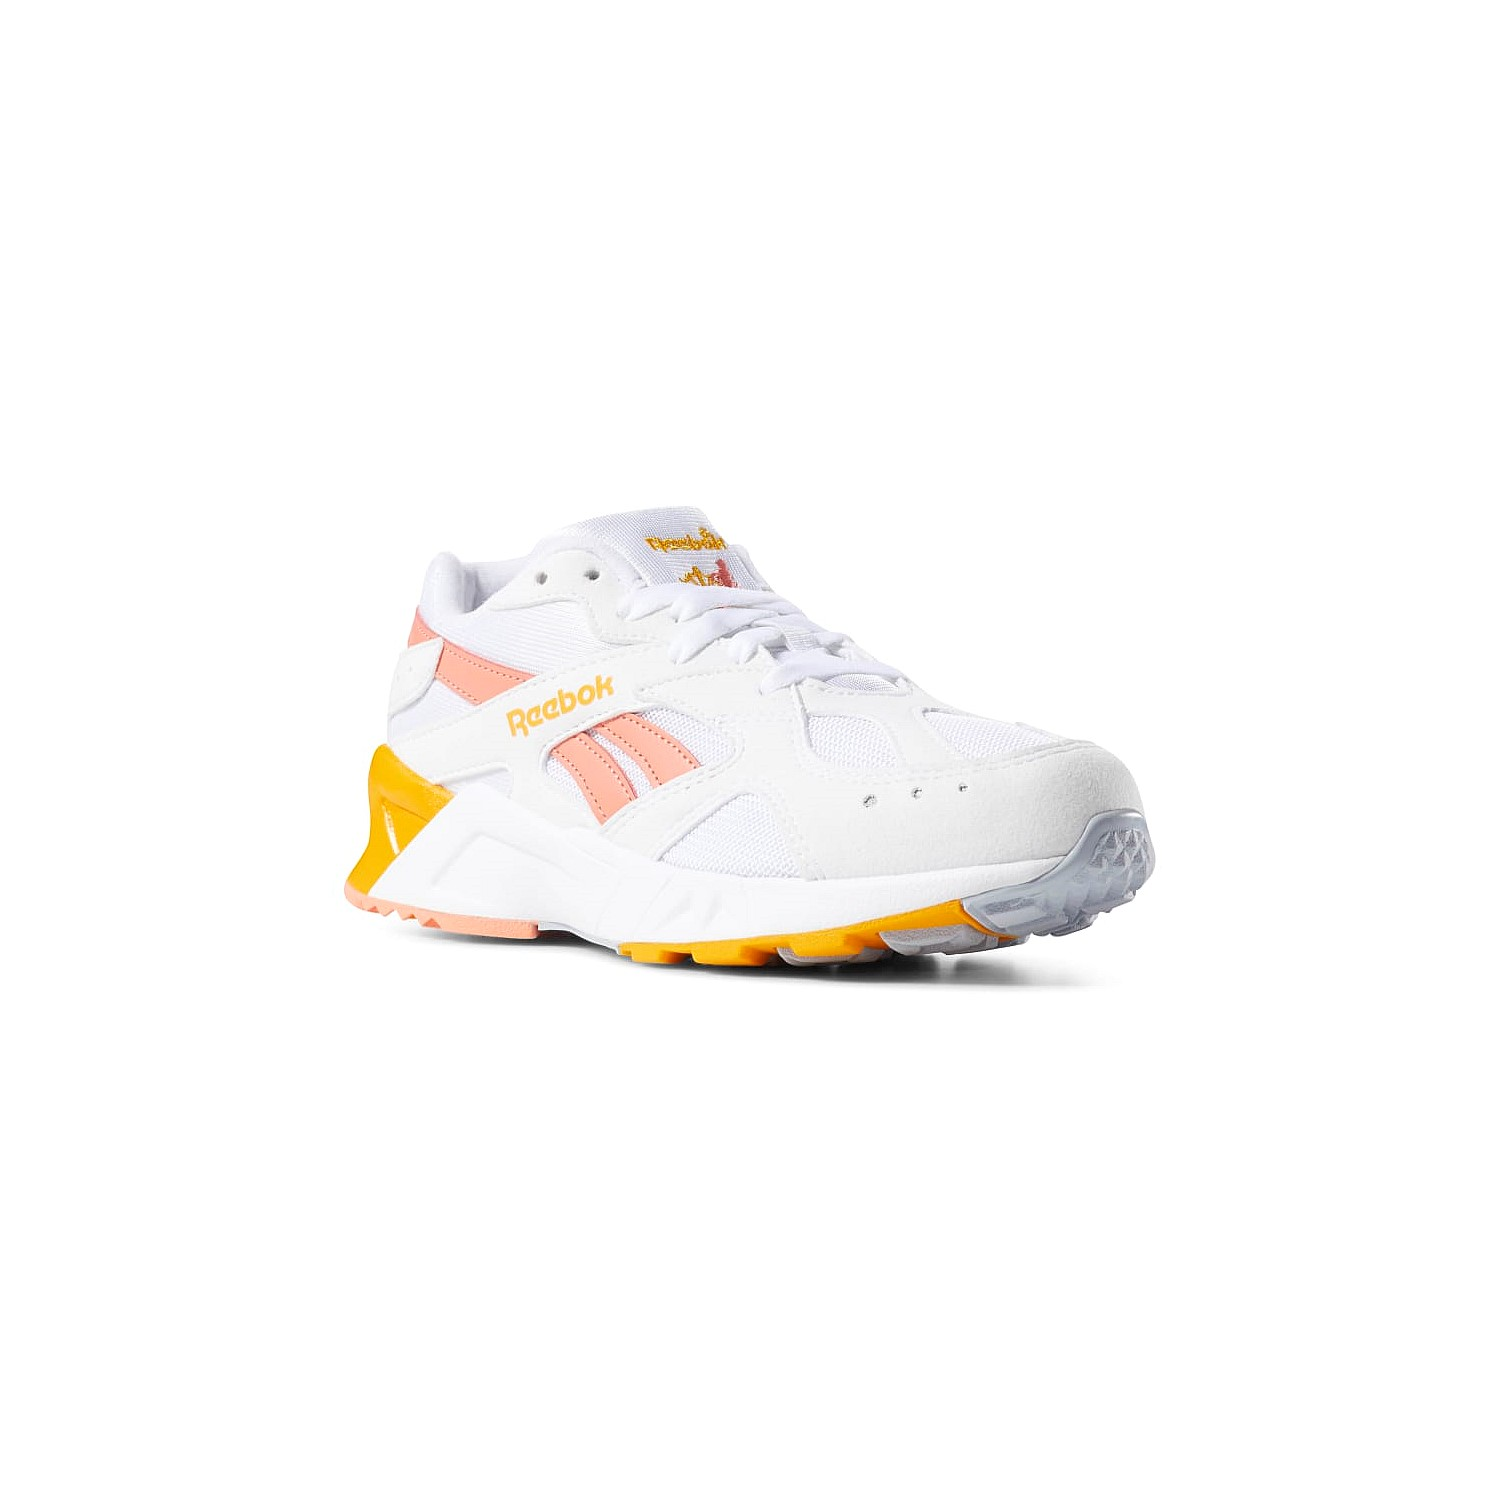 quality design 58352 36bdc New Arrivals Footwear   New Men s, Women s and Kid s Lifestyle and Training  Footwear Online   Stirling Sports - Aztrek Unisex